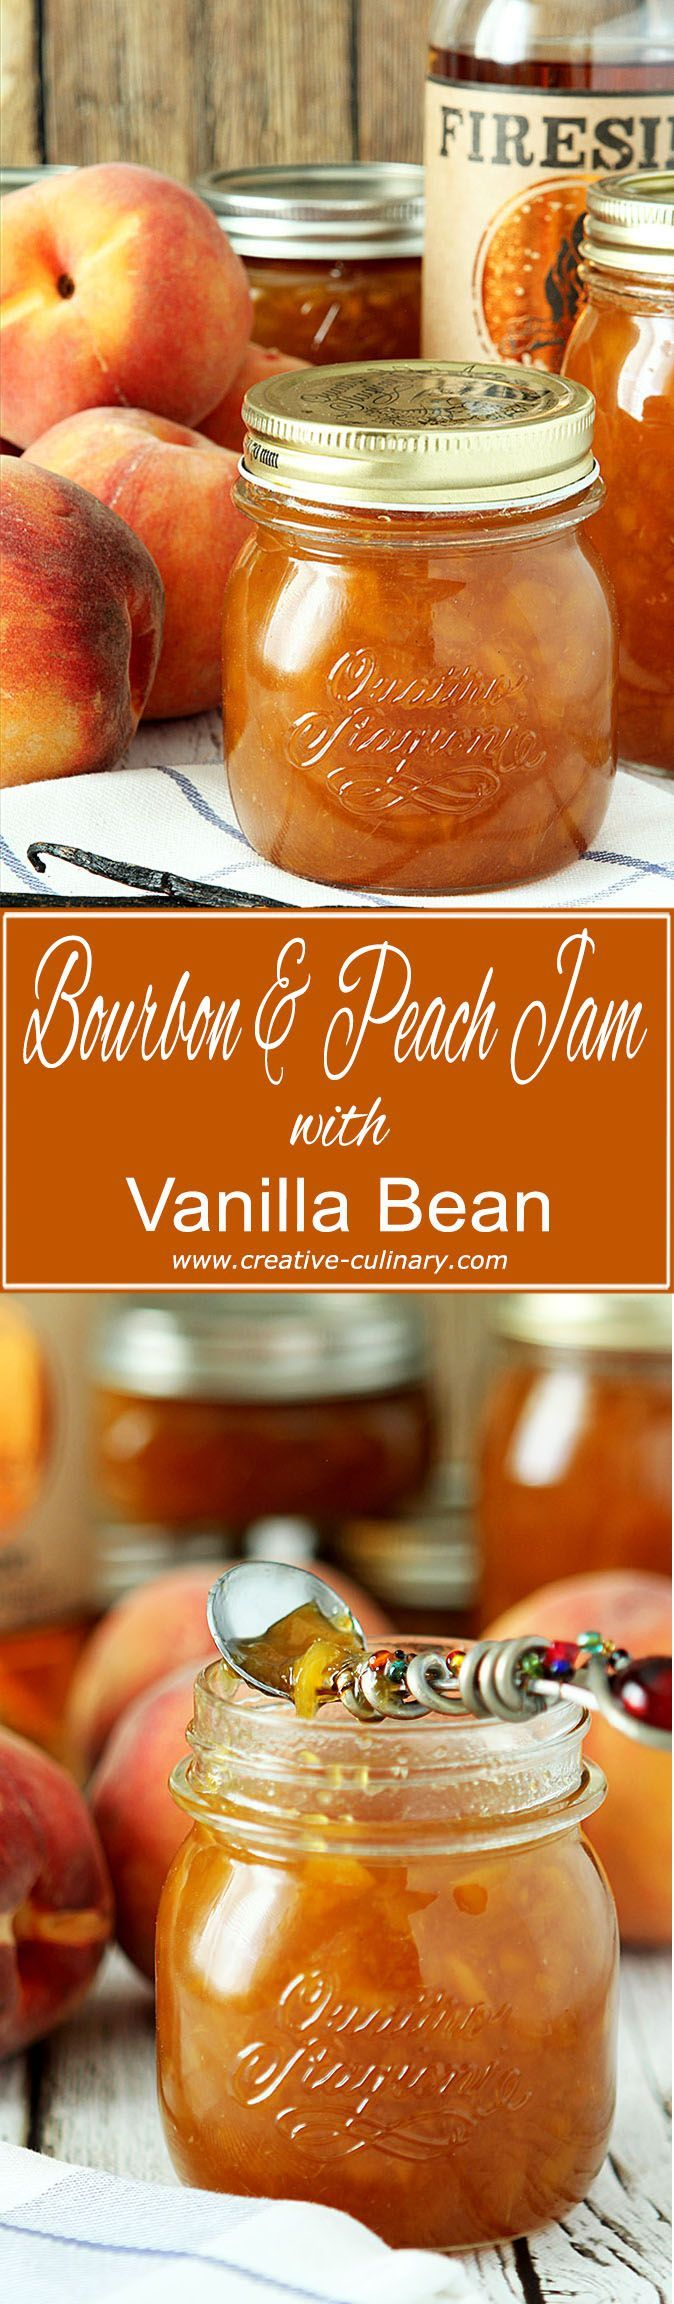 I think bourbon is the perfect spirit to pair with peaches and this Bourbon Peach Jam with Vanilla Bean is a decadent start to the day! via @creativculinary